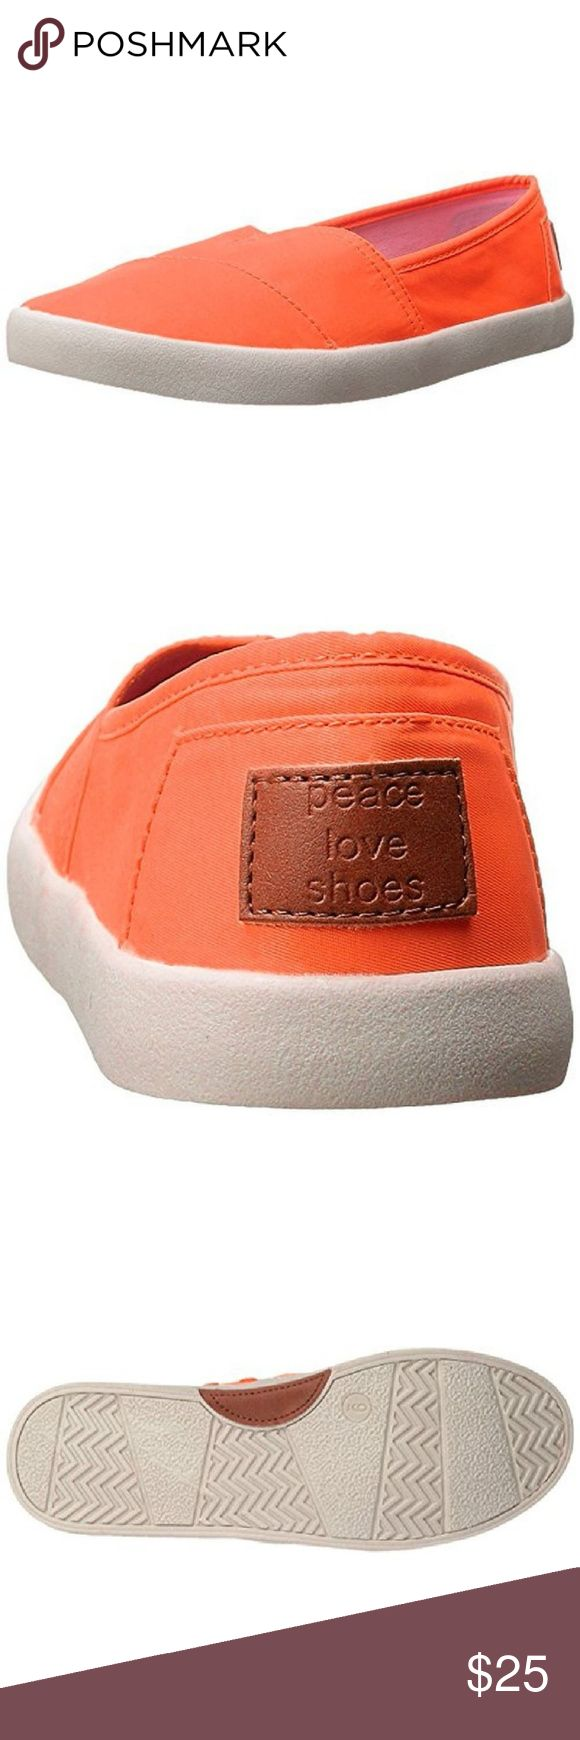 """SALE Madden Girl Orange Canvas Flats NIB 7.5 MAJOR CHRISTMAS SHOE & SLIPPER SALE - PRICES ARE FIRM All shoes and slippers on sale through tomorrow night.  Super cute slip on """"Sail On"""" flats. NIB 7.5 Madden Girl Shoes Flats & Loafers"""